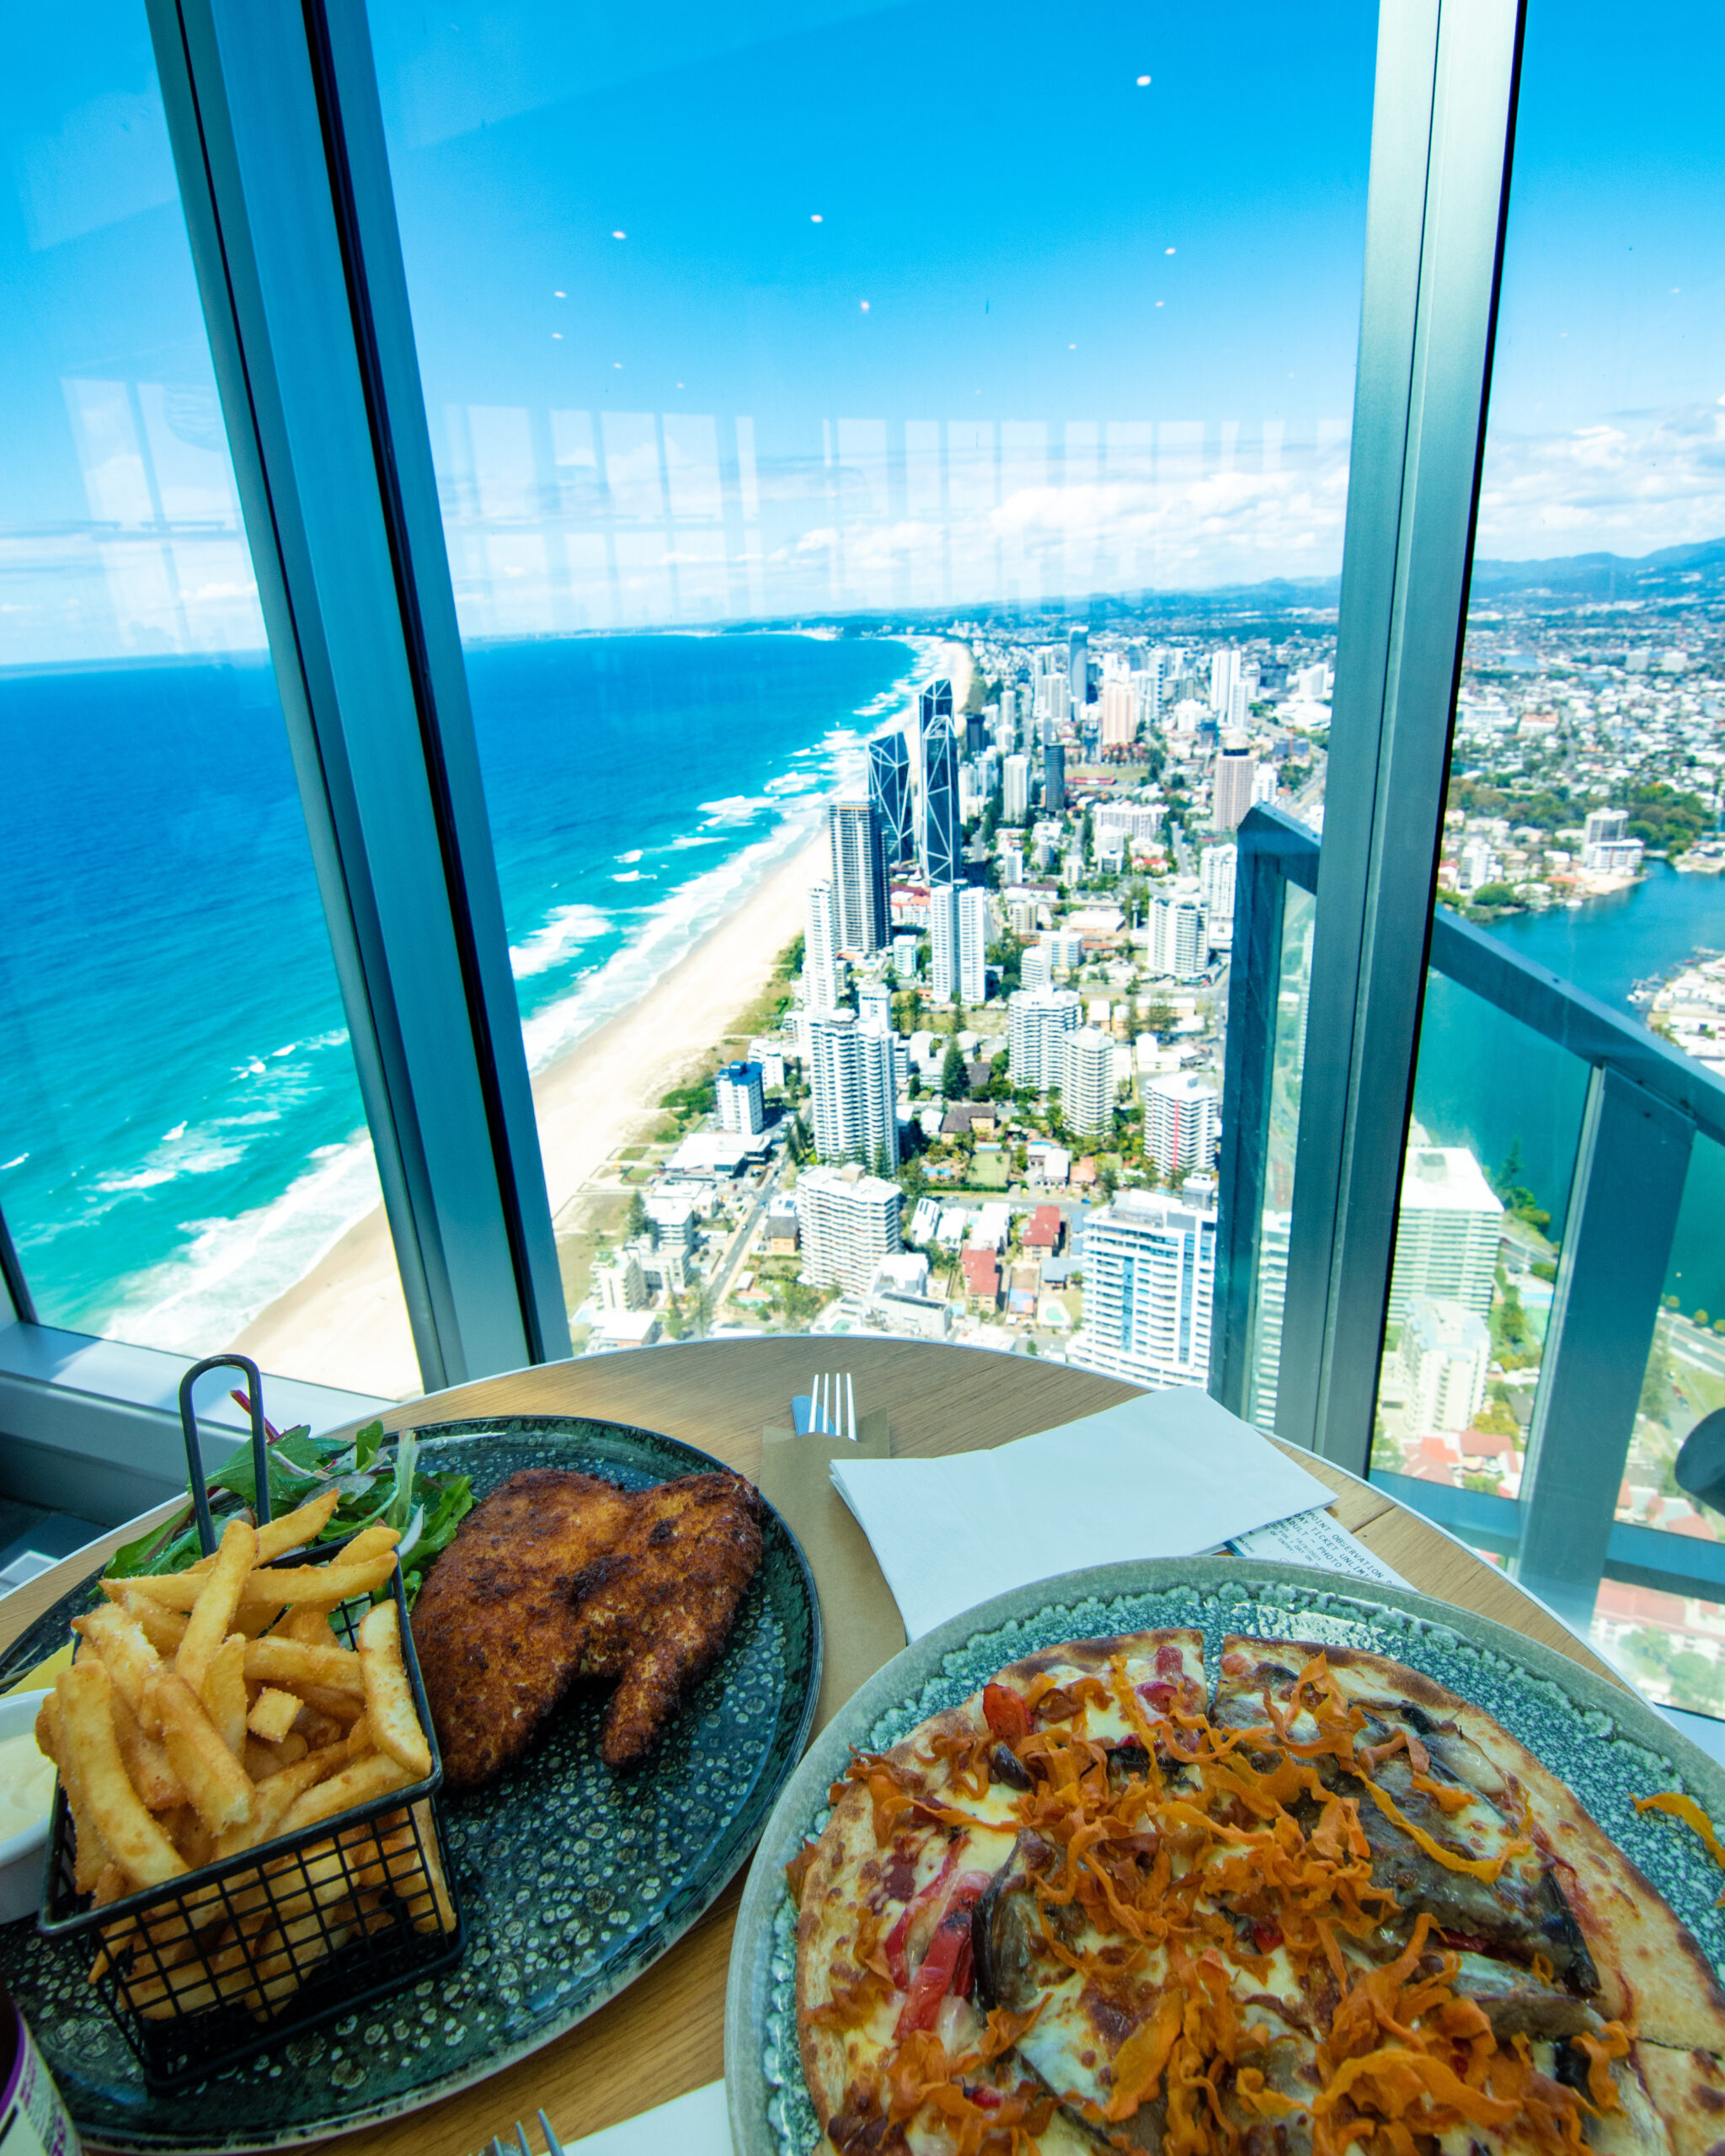 Skypoint Observation Deck Q1 Surfers Paradise Gold Coast